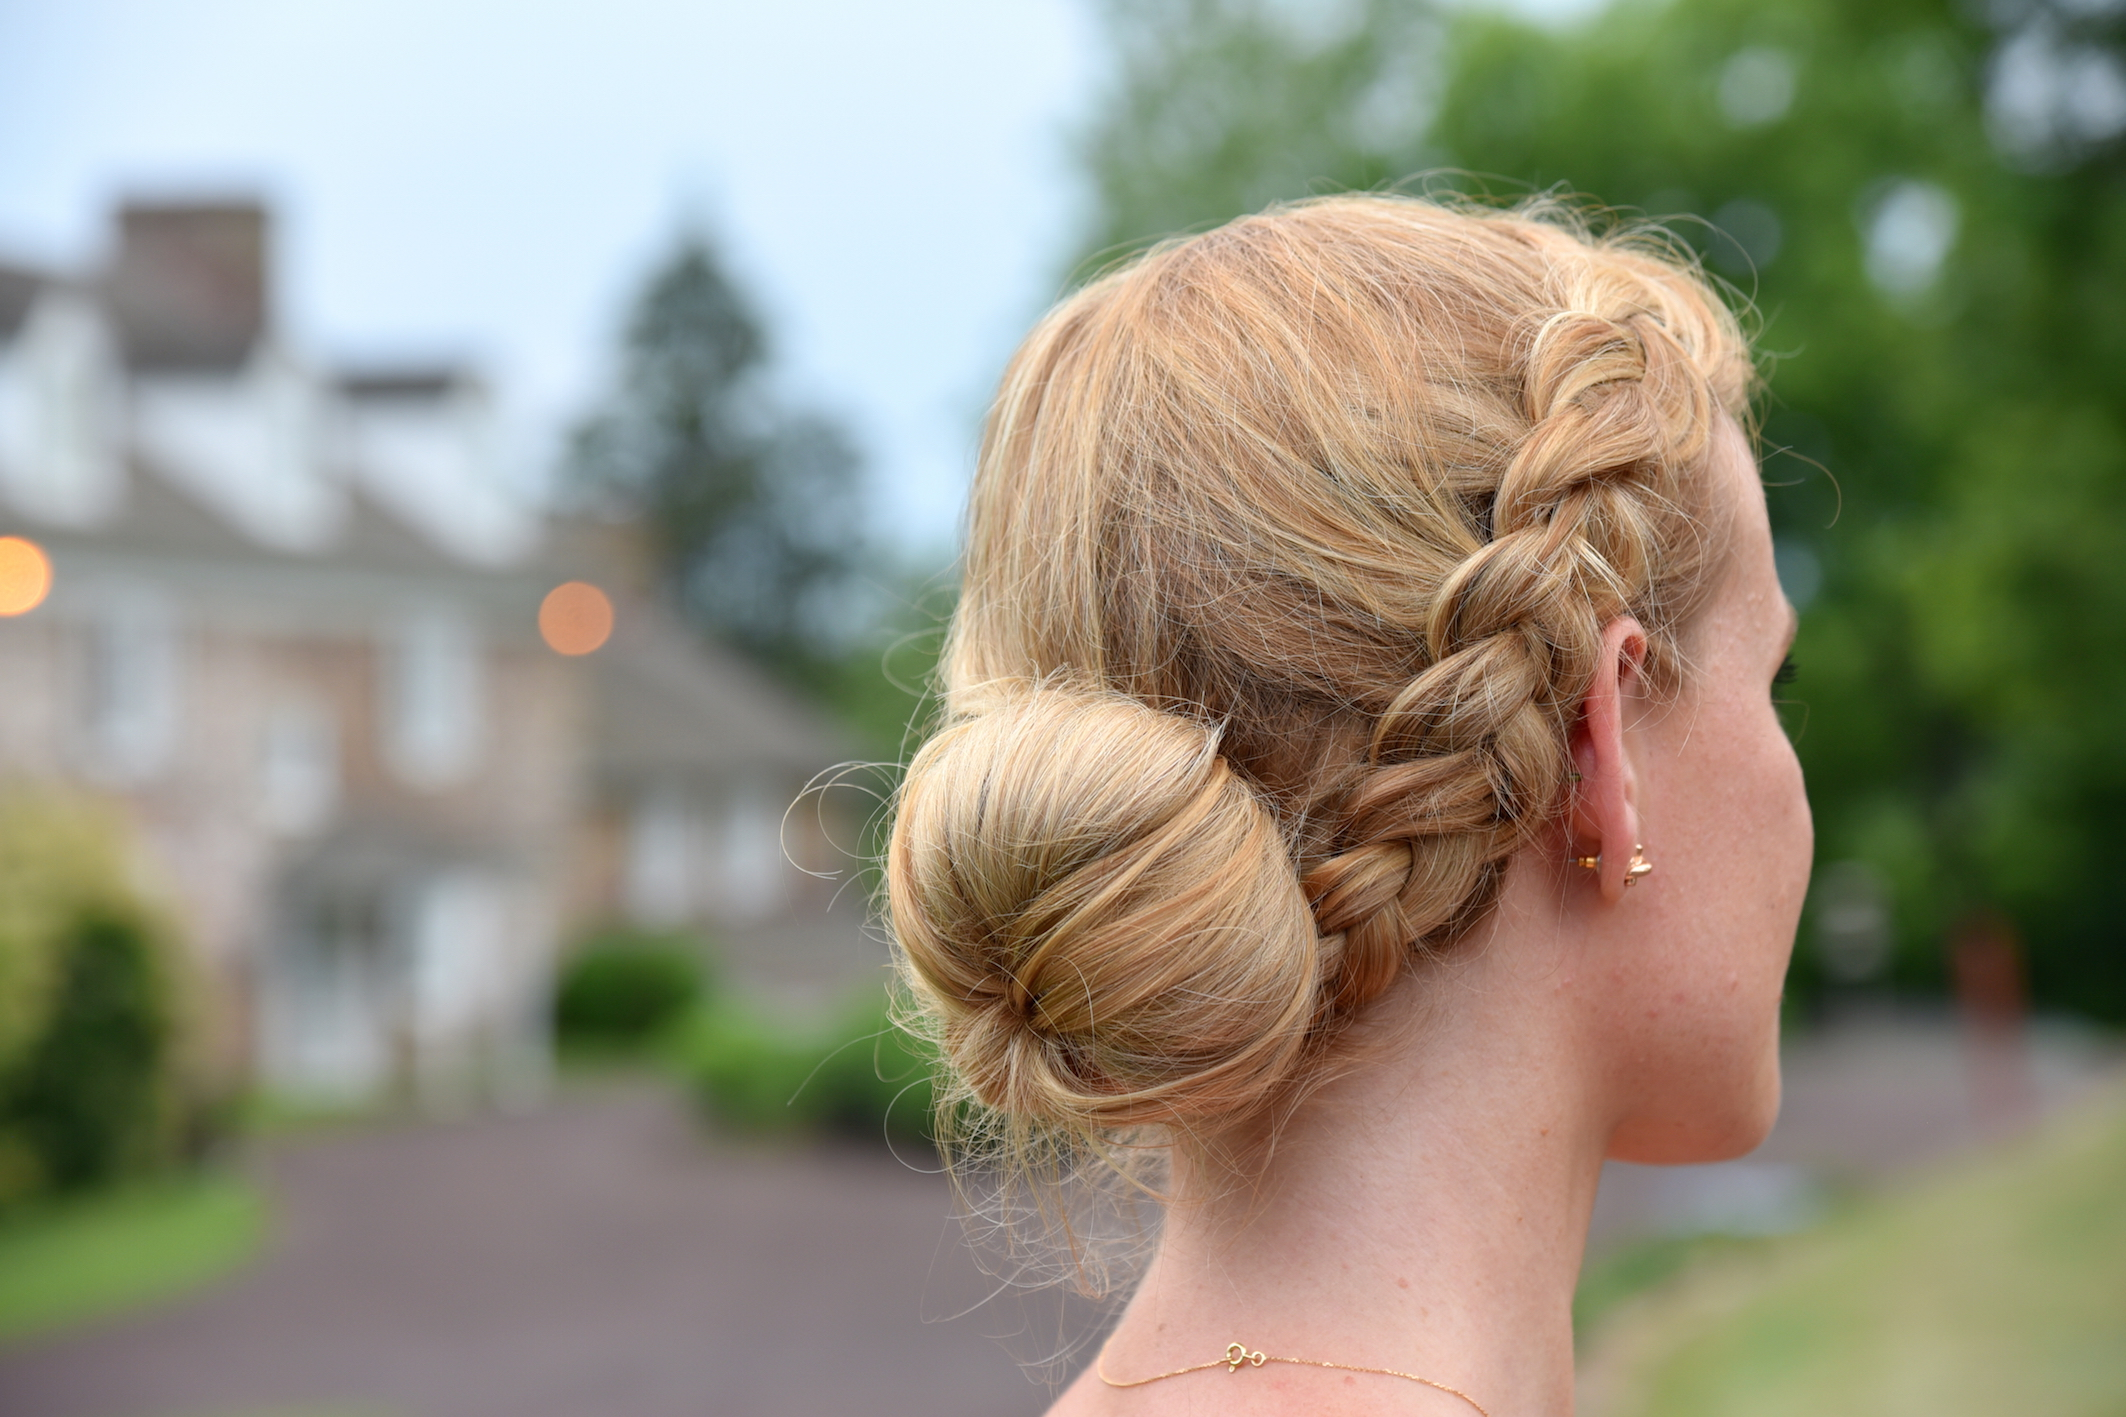 Braided Bun Summer Wedding Hairstyle Fashion blogger